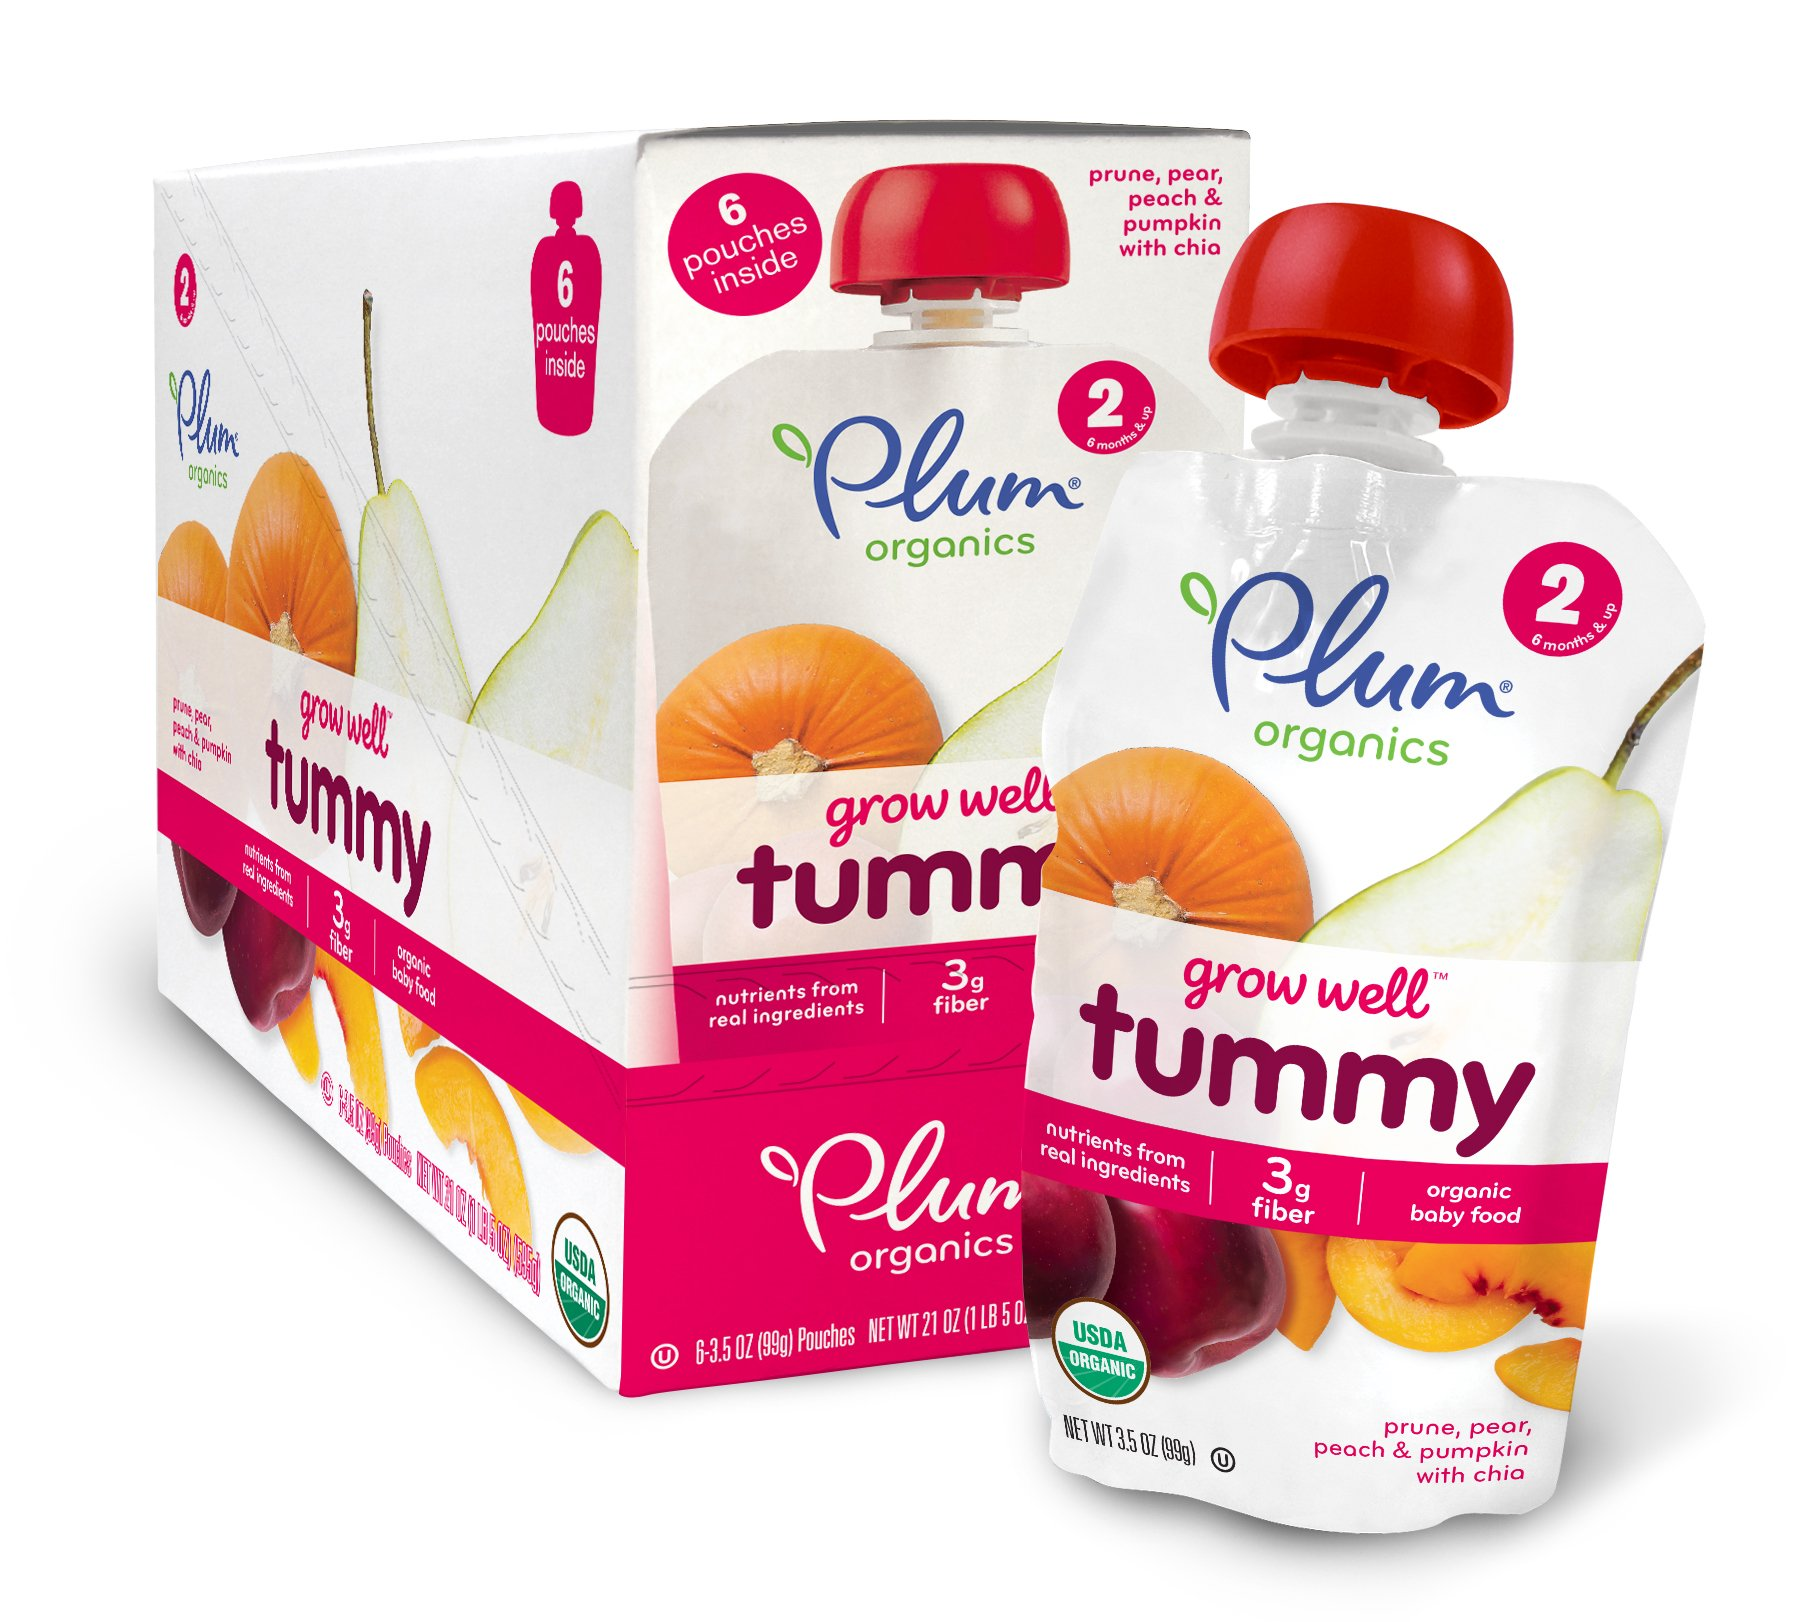 Plum Organics Baby Grow Well Food, Prune/Pear/Peach/Pumpkin with Chia Puree, 3.5 Ounce (Pack of 12) by Plum Organics